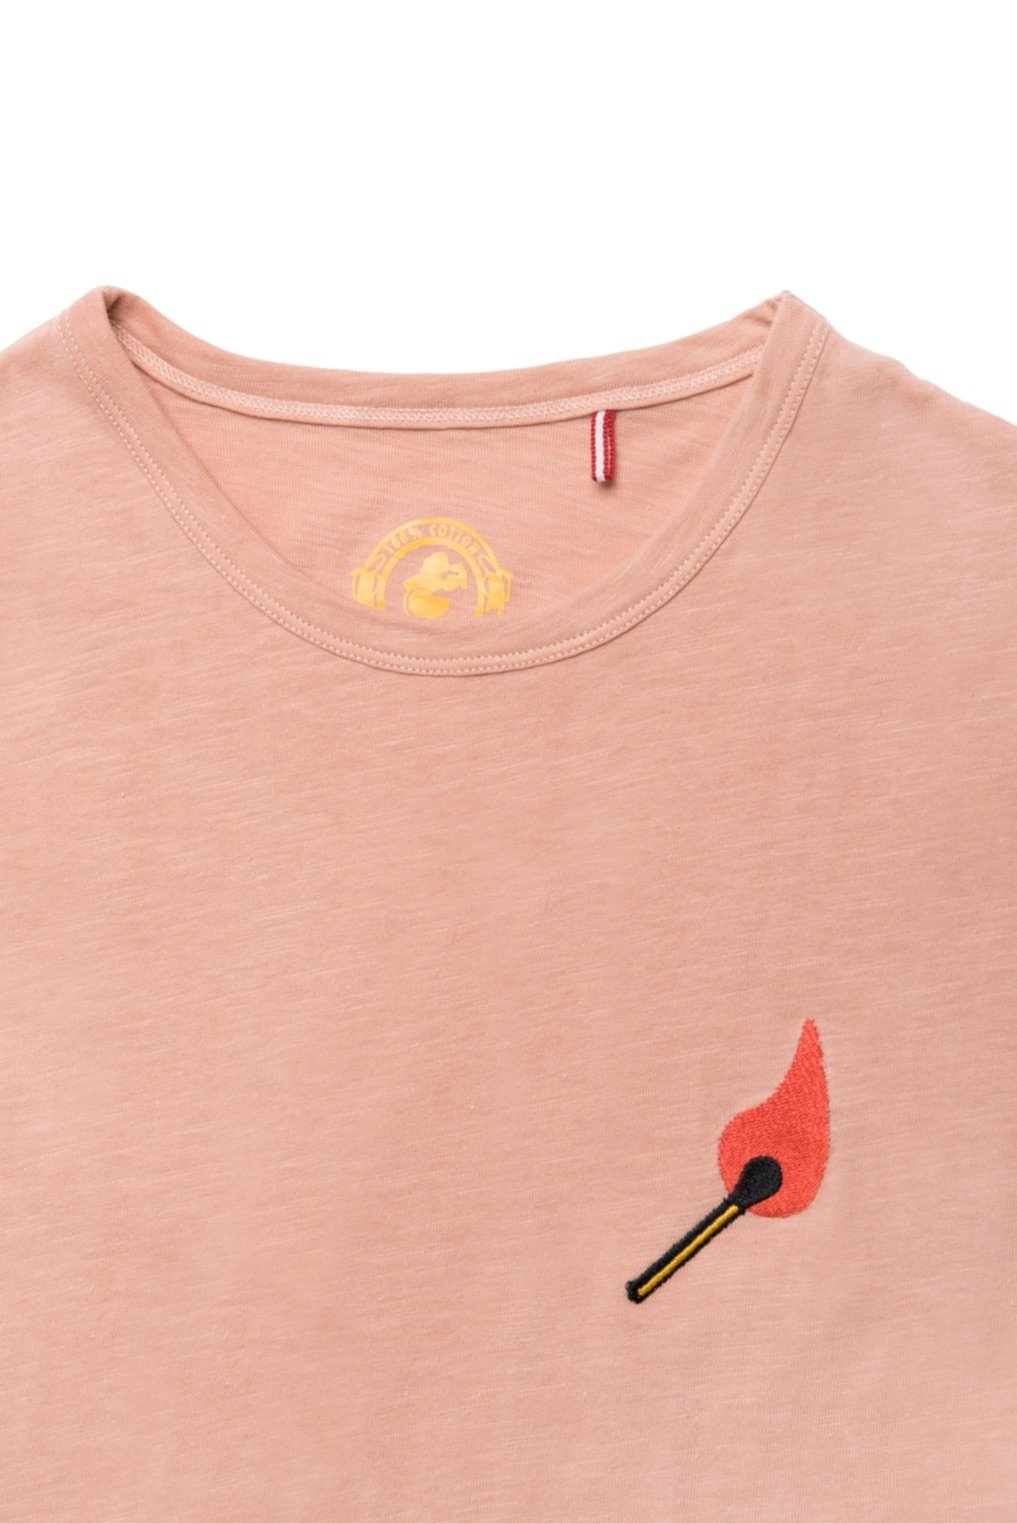 Mami Wata Surf Mami Wata Surf Ladies Embroided Fire Tee Peach